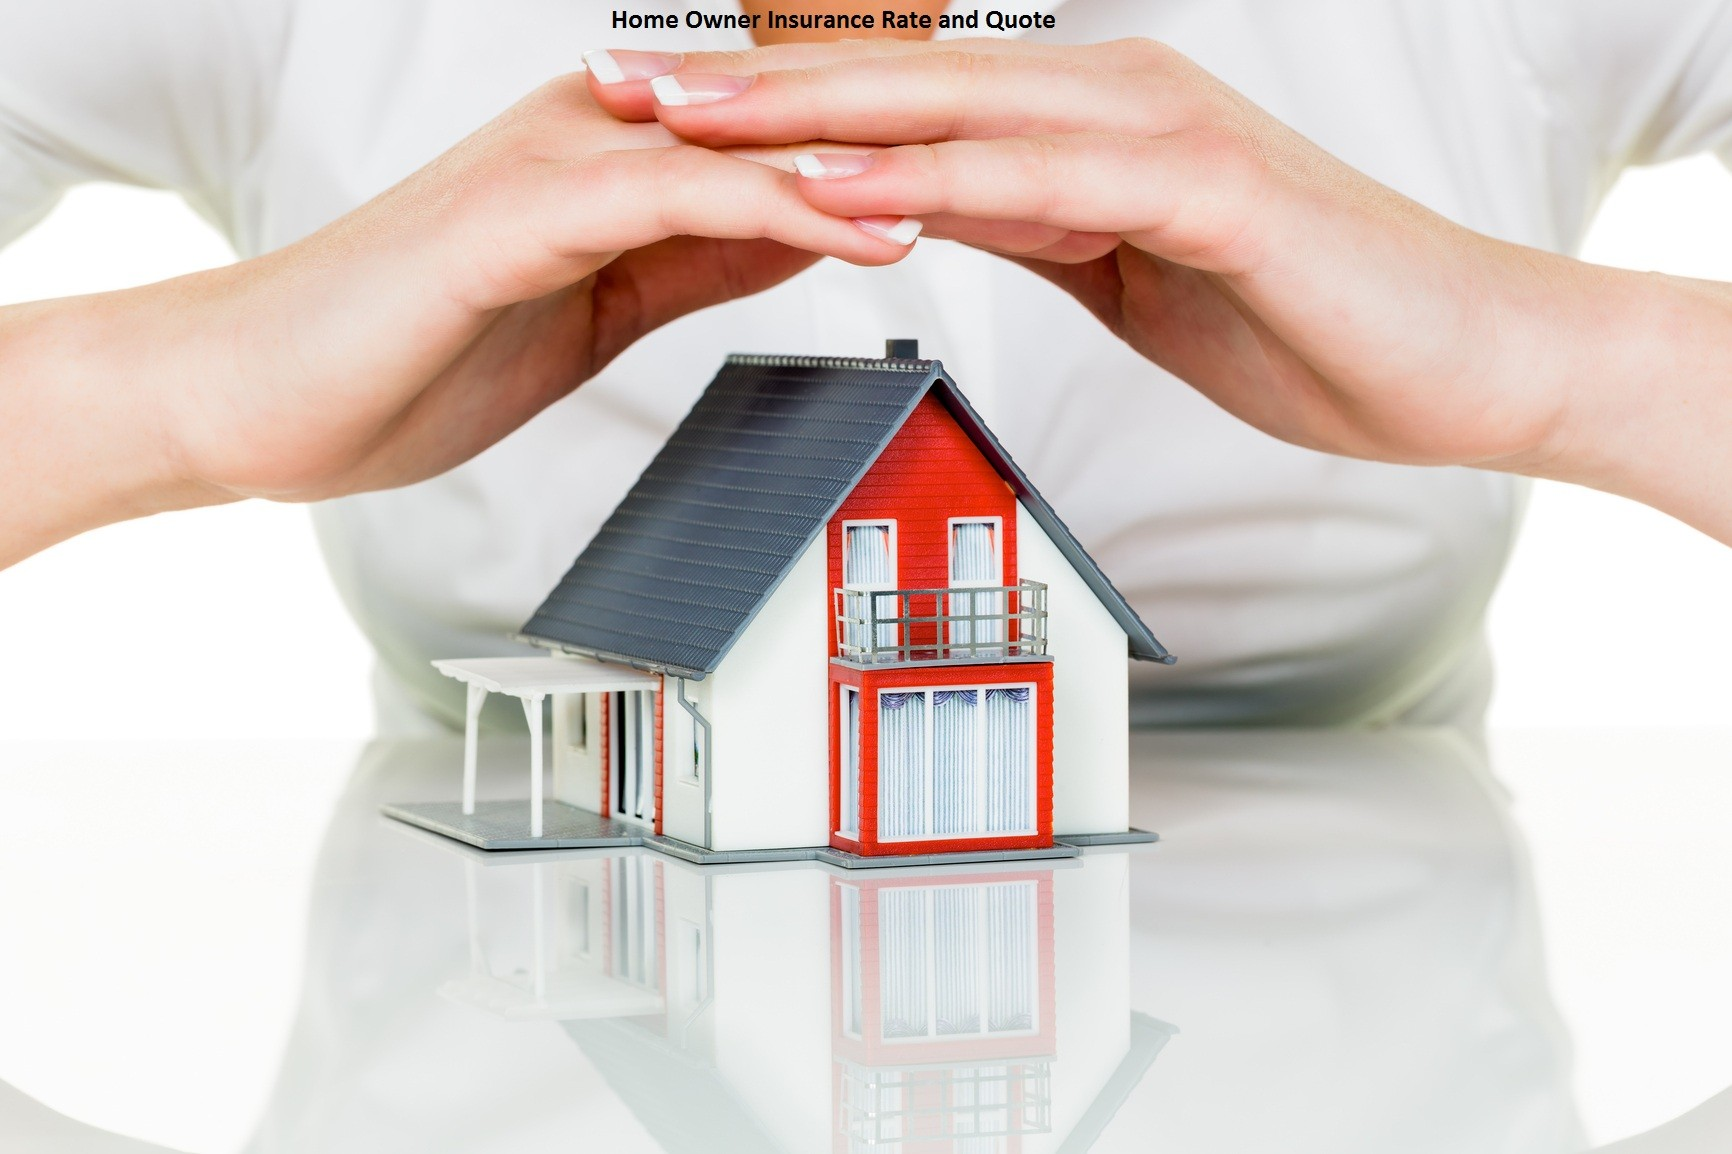 We know buying homeowners insurance is a major decision.